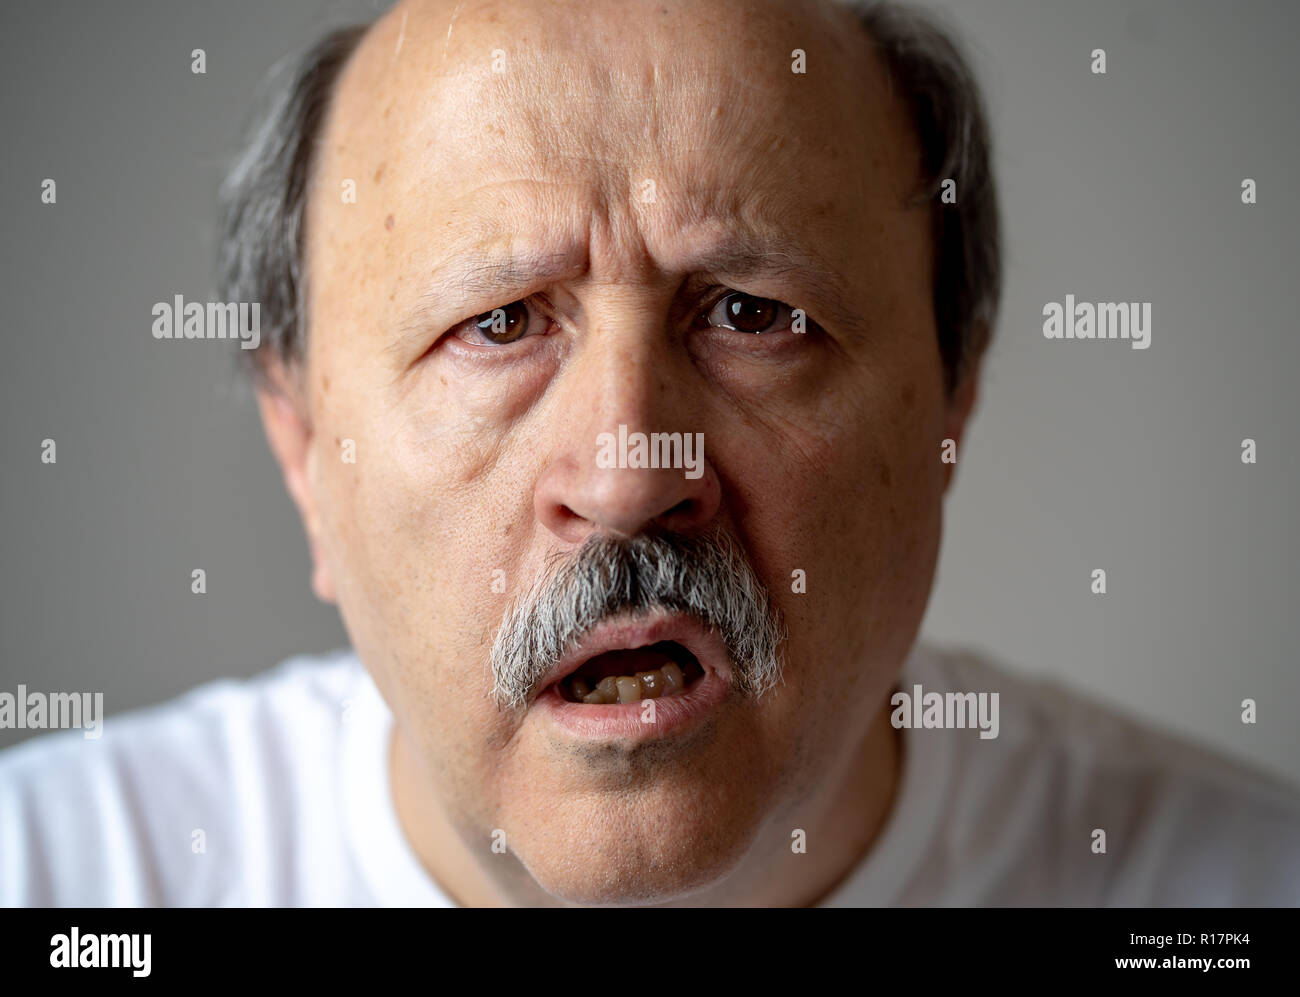 Close up portrait of senior man looking confused and lost suffering from dementia, memory loss or Alzheimer in Mental health in Older Adults and later Stock Photo